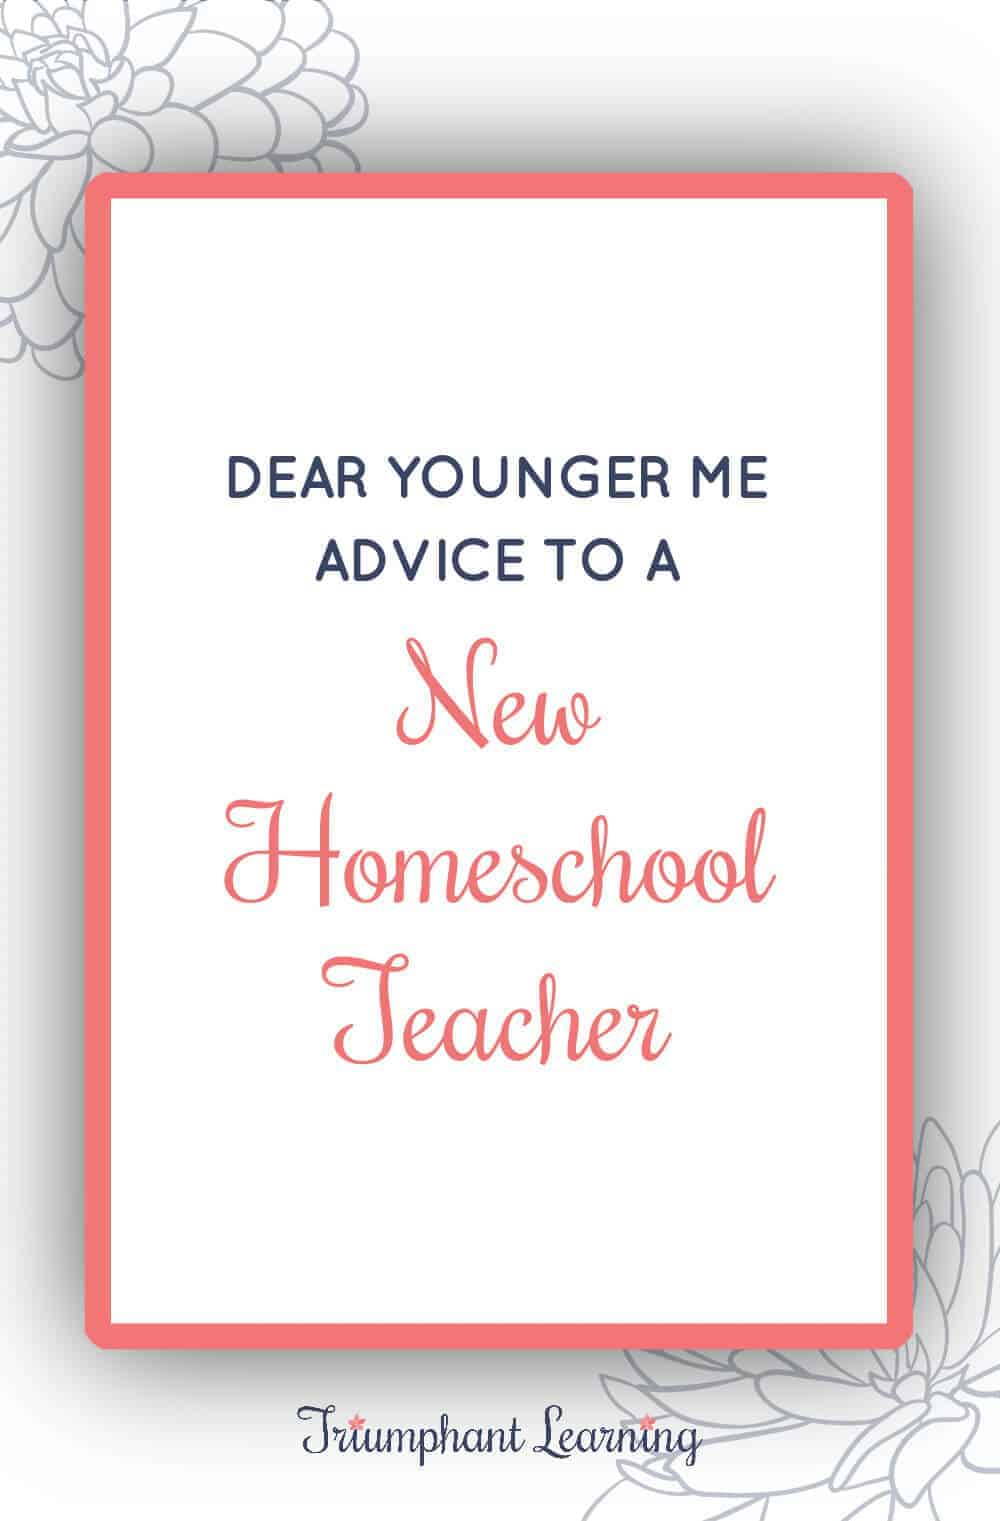 There's a lot you don't know when you start homeschooling. Here's a letter I wish I had received when we started our homeschool journey. via @TriLearning